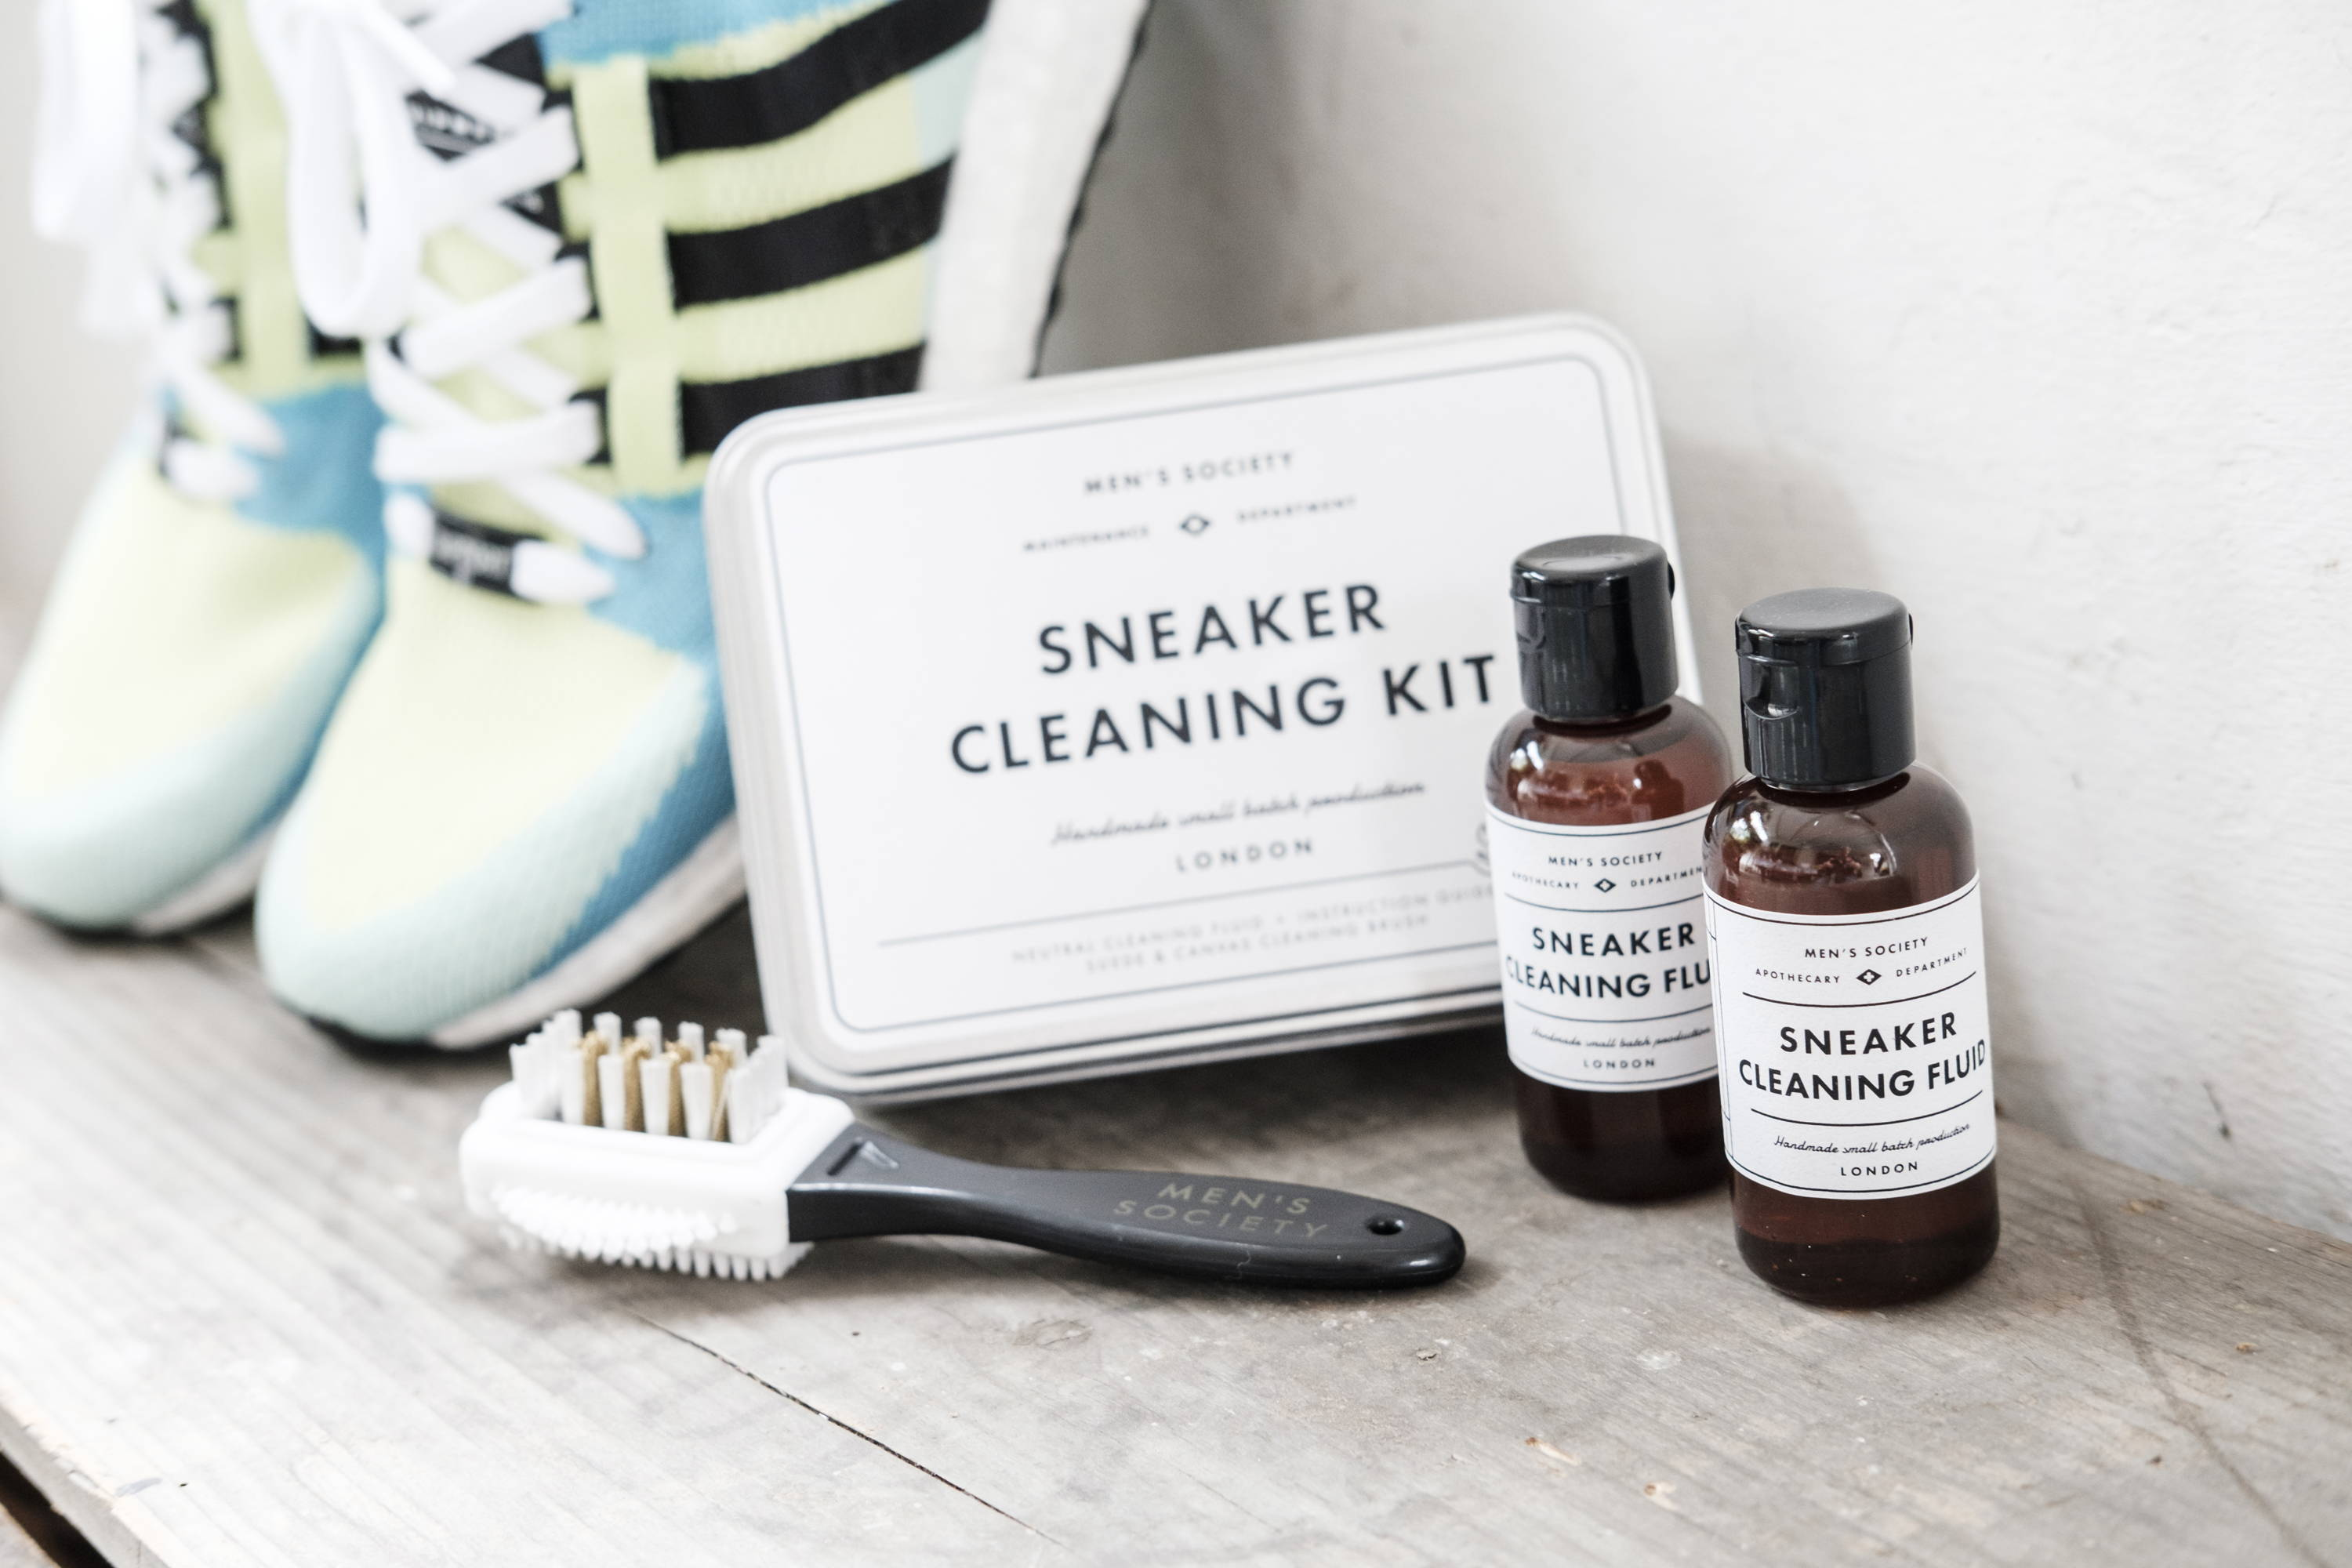 Wholesale Sneaker Cleaning Kits and Accessories